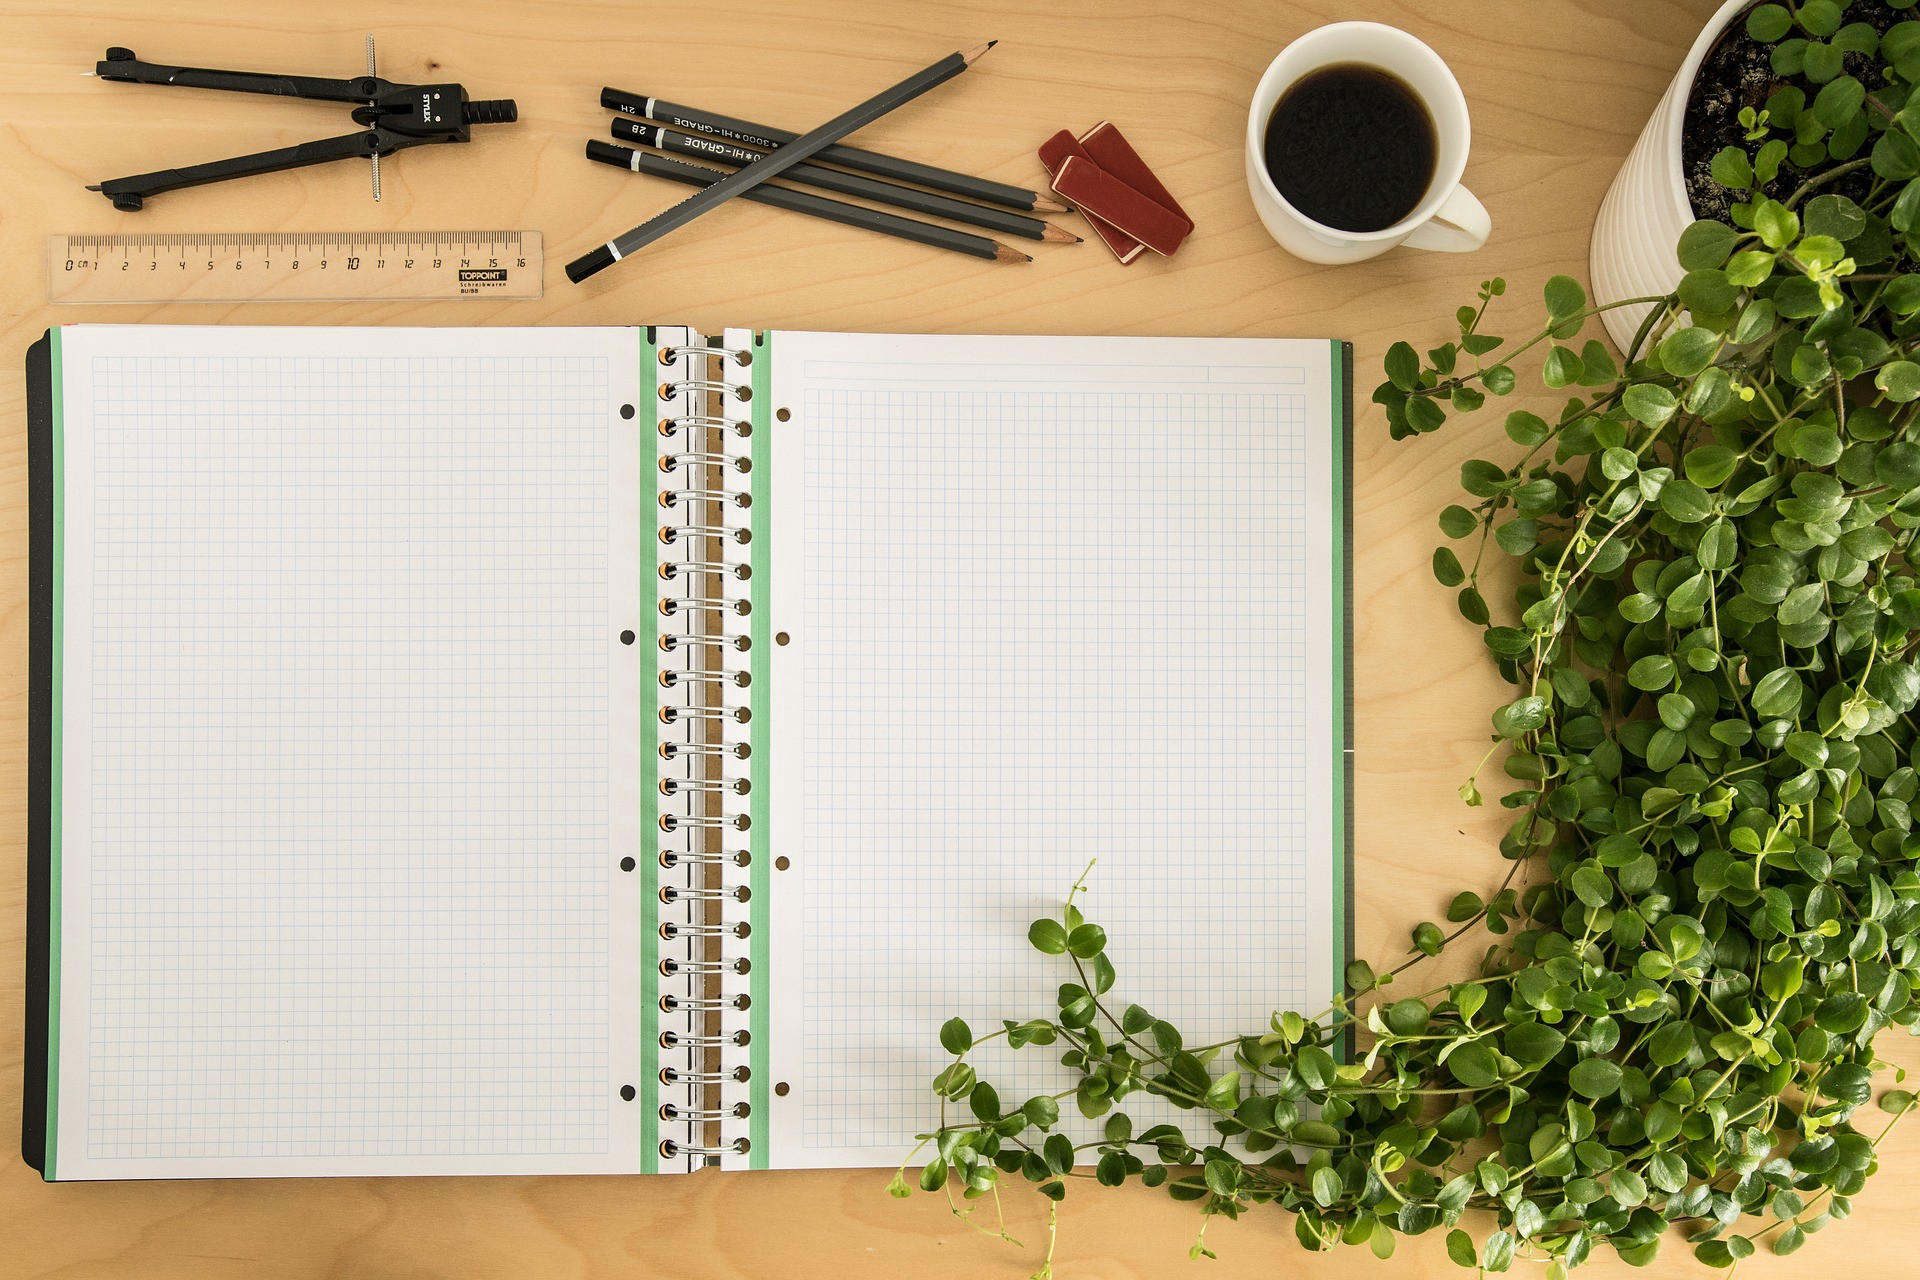 A blank notebook sits on a desk with a compass, ruler, pencils, coffee, and a potted plant.